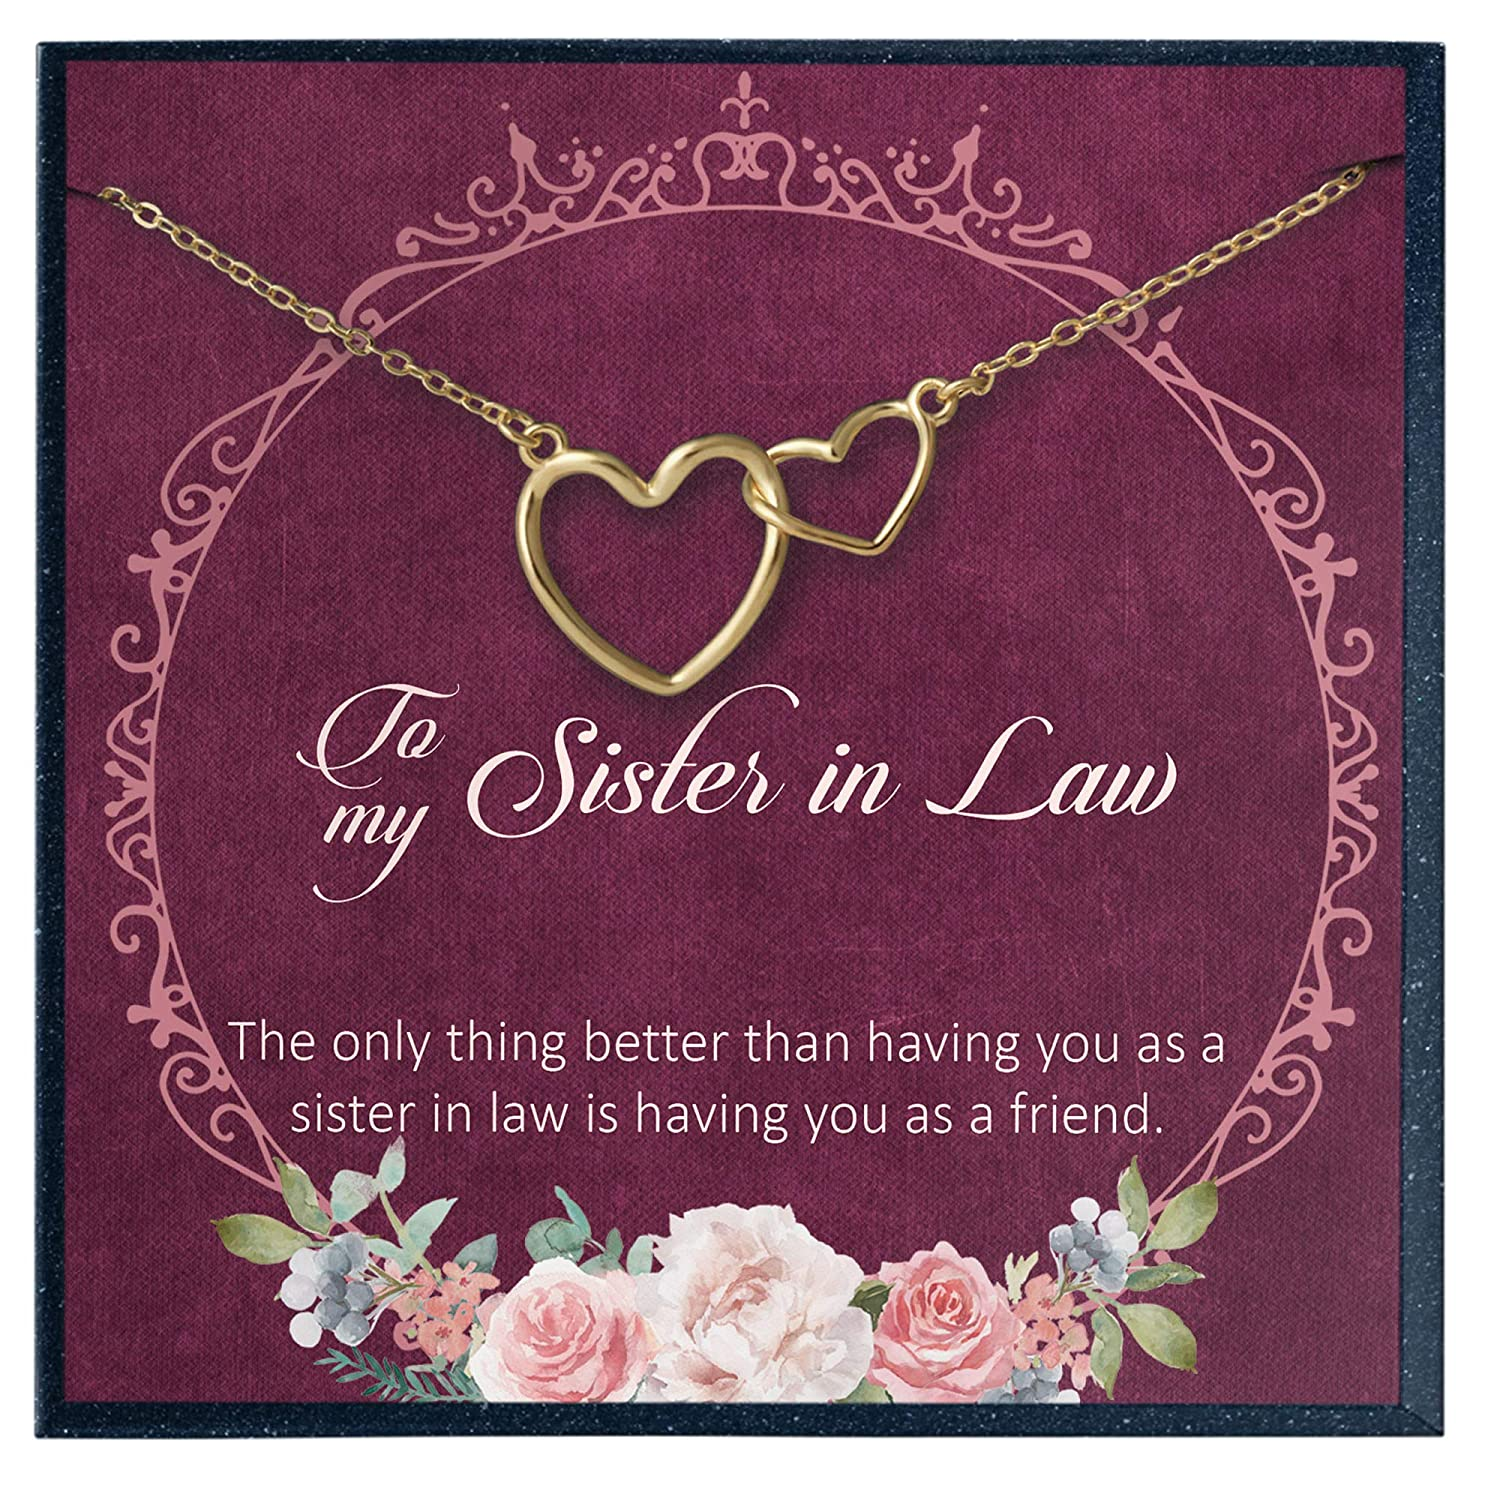 Sister in Law Necklace \u2022 Funny Gift for Sister in Law \u2022  Sister of the Groom Wedding Gift \u2022 Birthday Gift for Sister-in-law